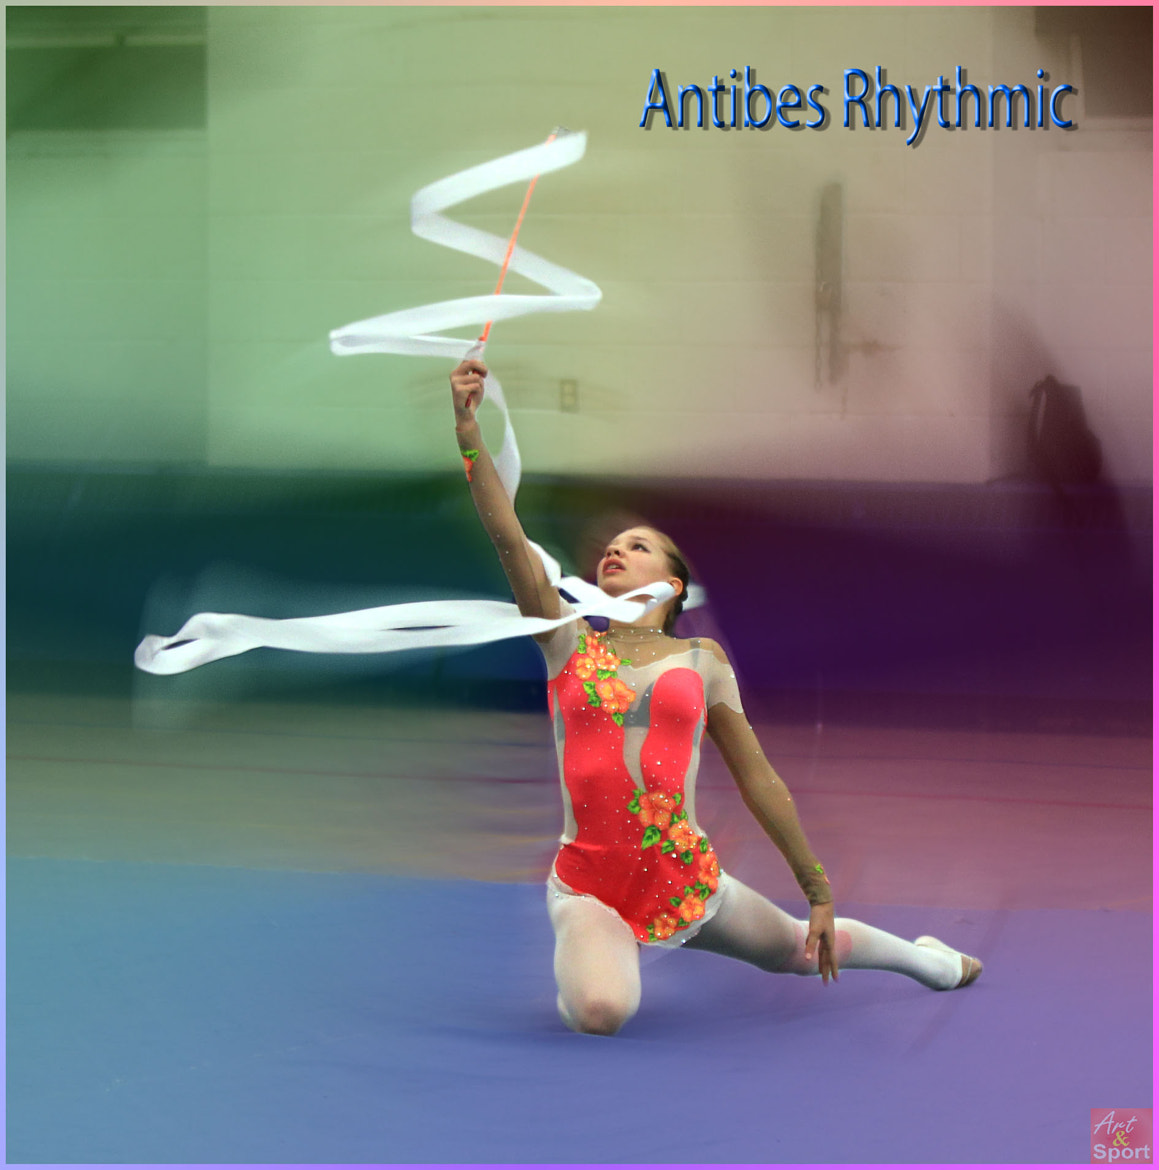 Photograph Ribbon routine by Antibes Rhythmic on 500px